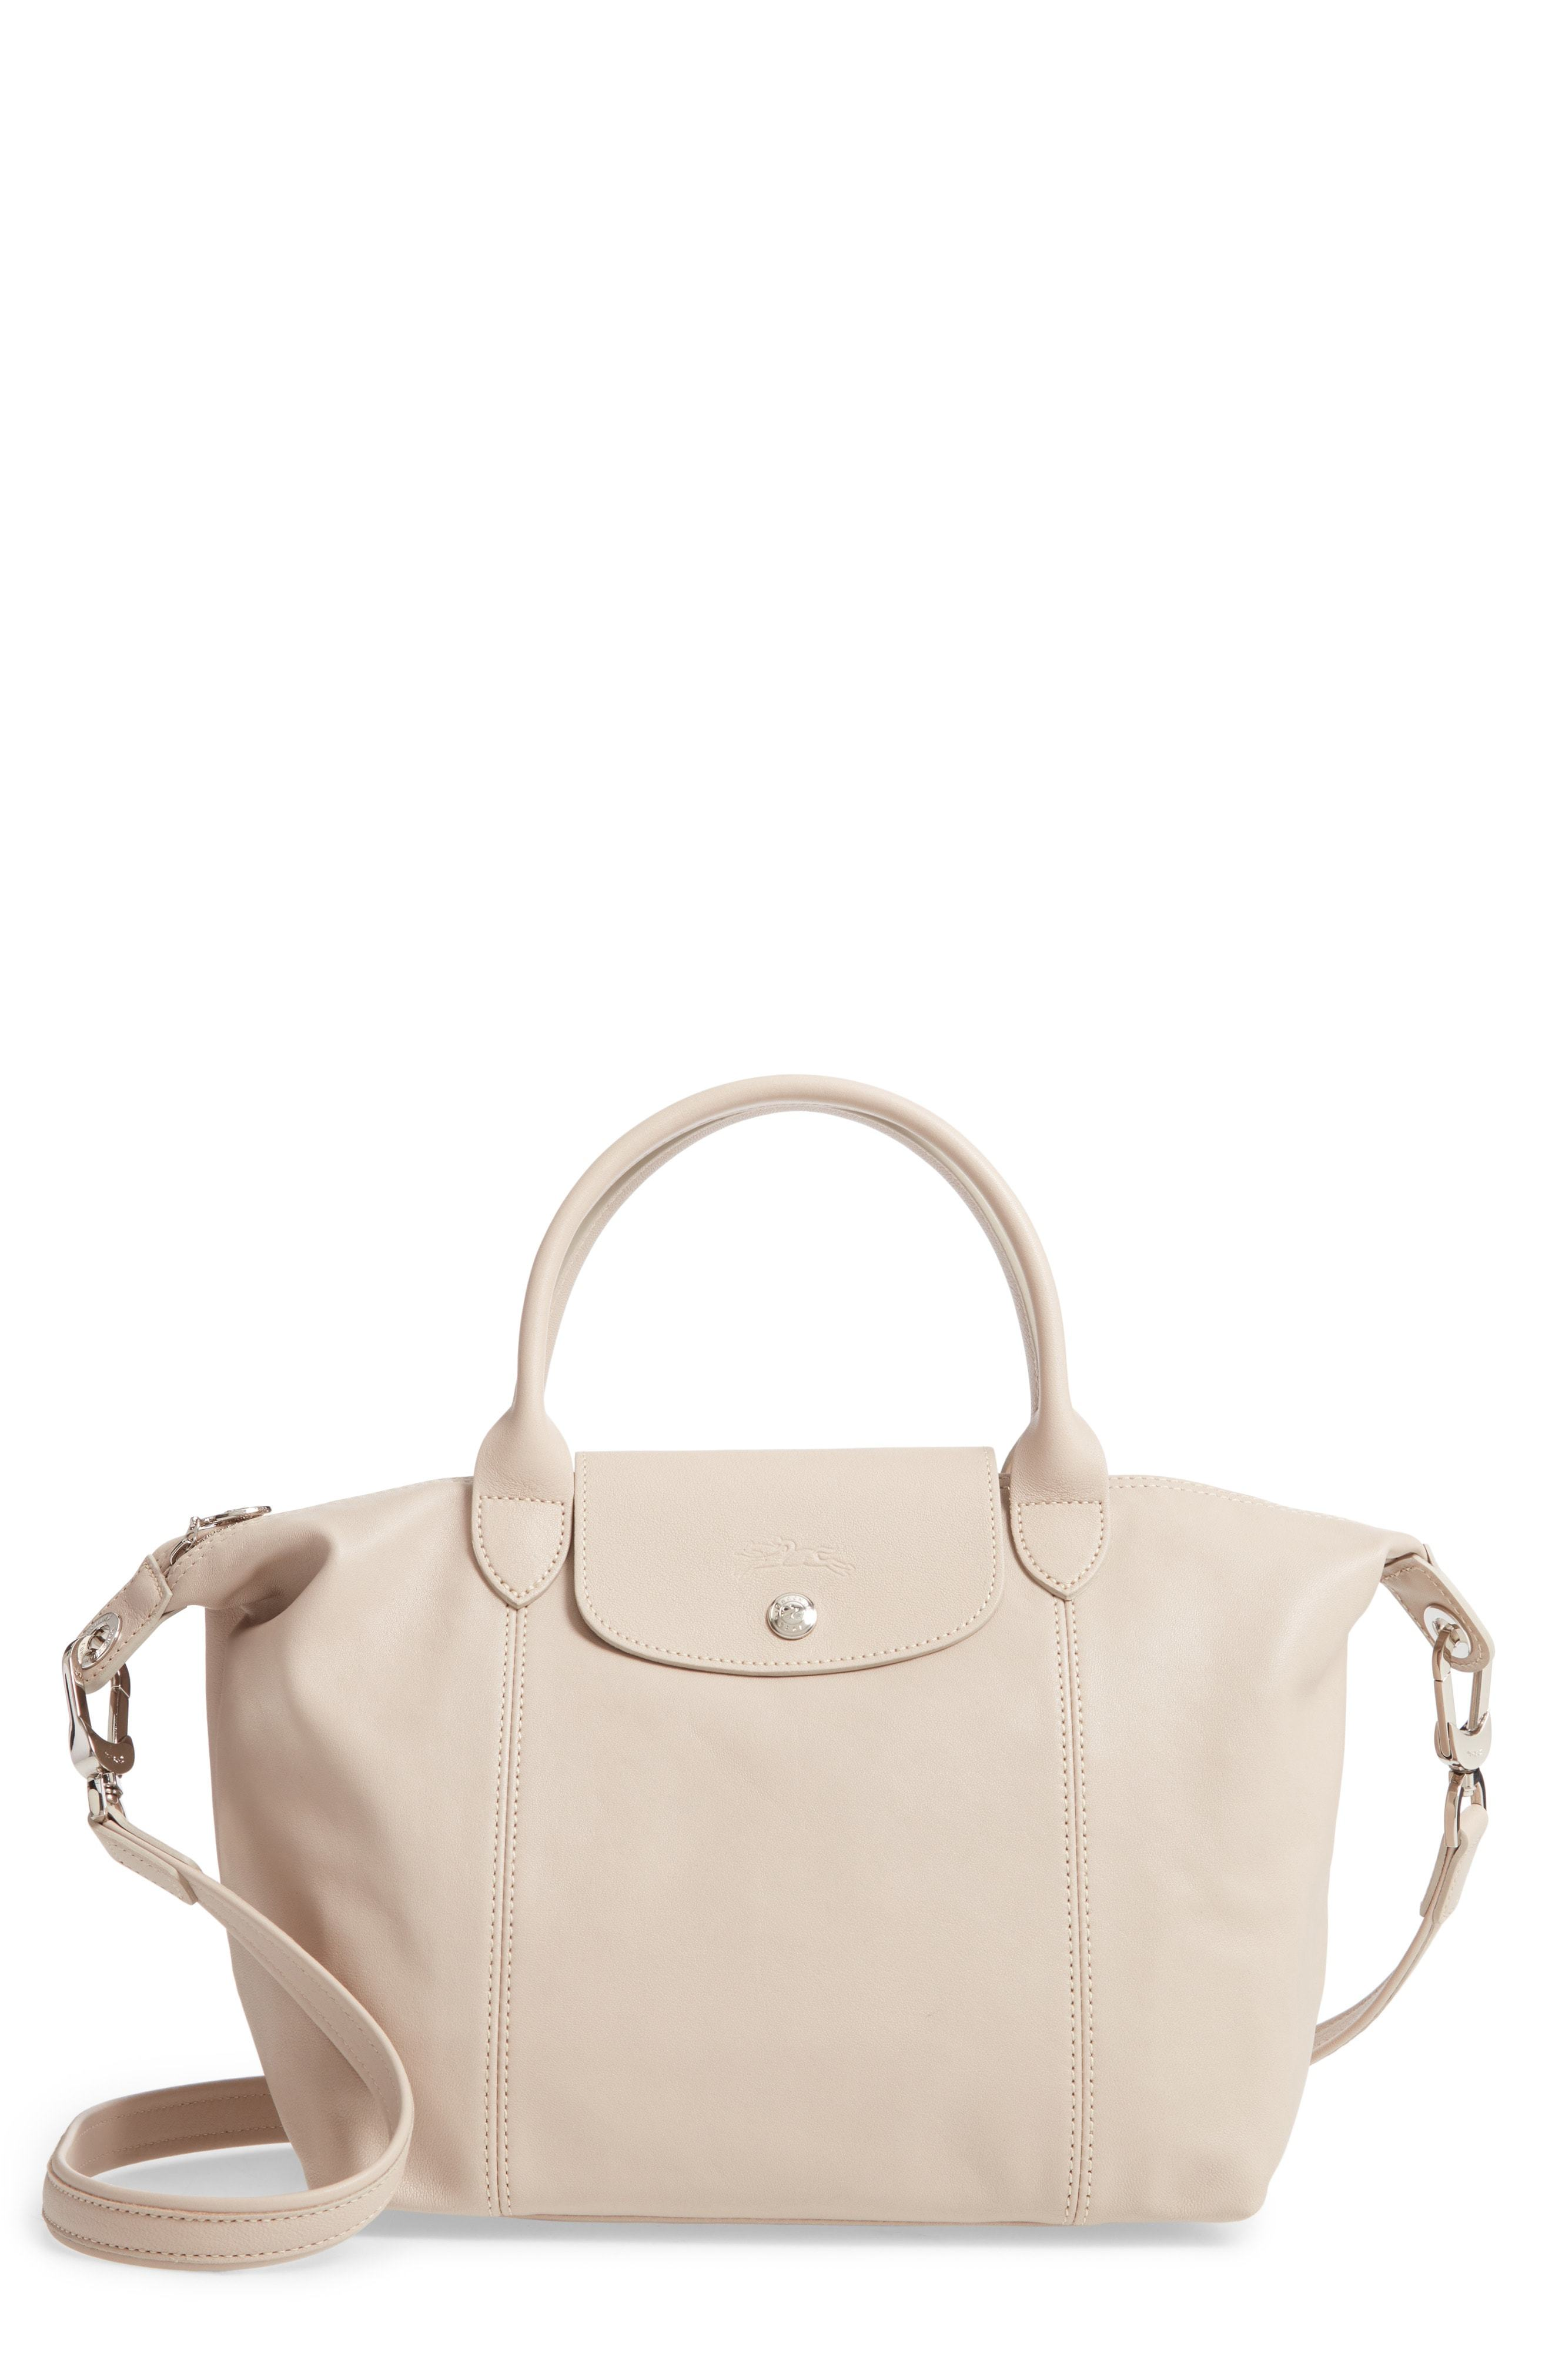 Small Le Pliage Cuir Leather Tote